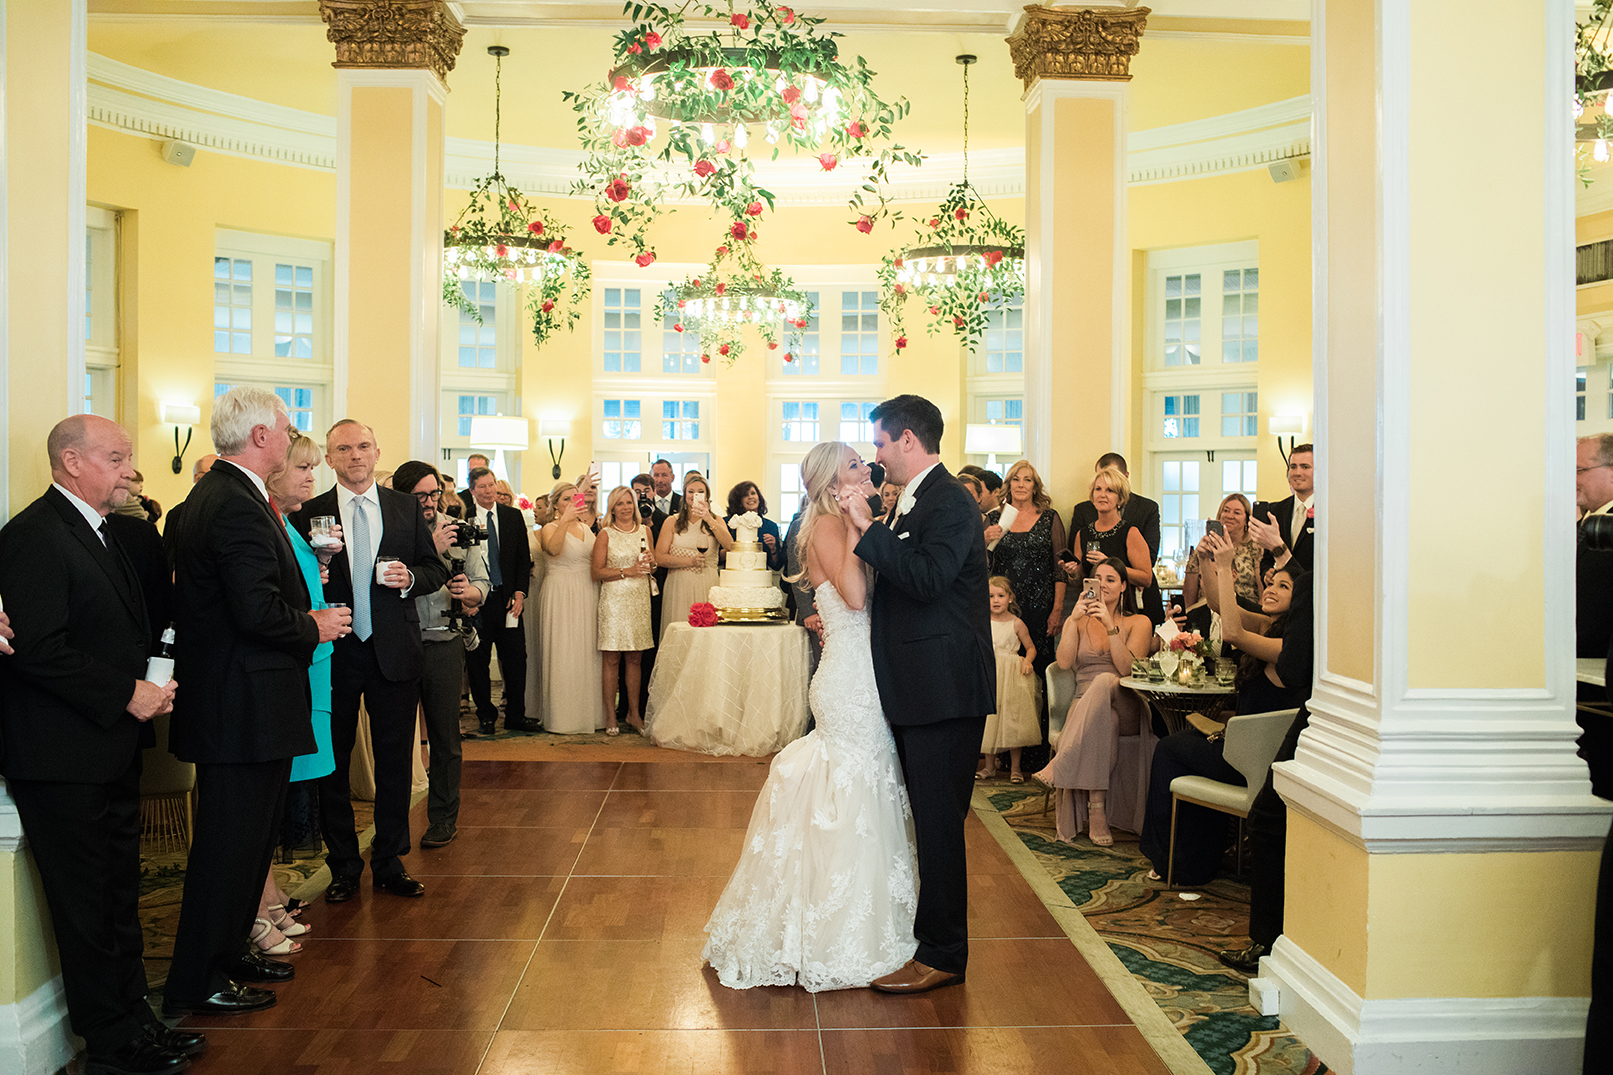 hotel wedding, first dance, bride, groom